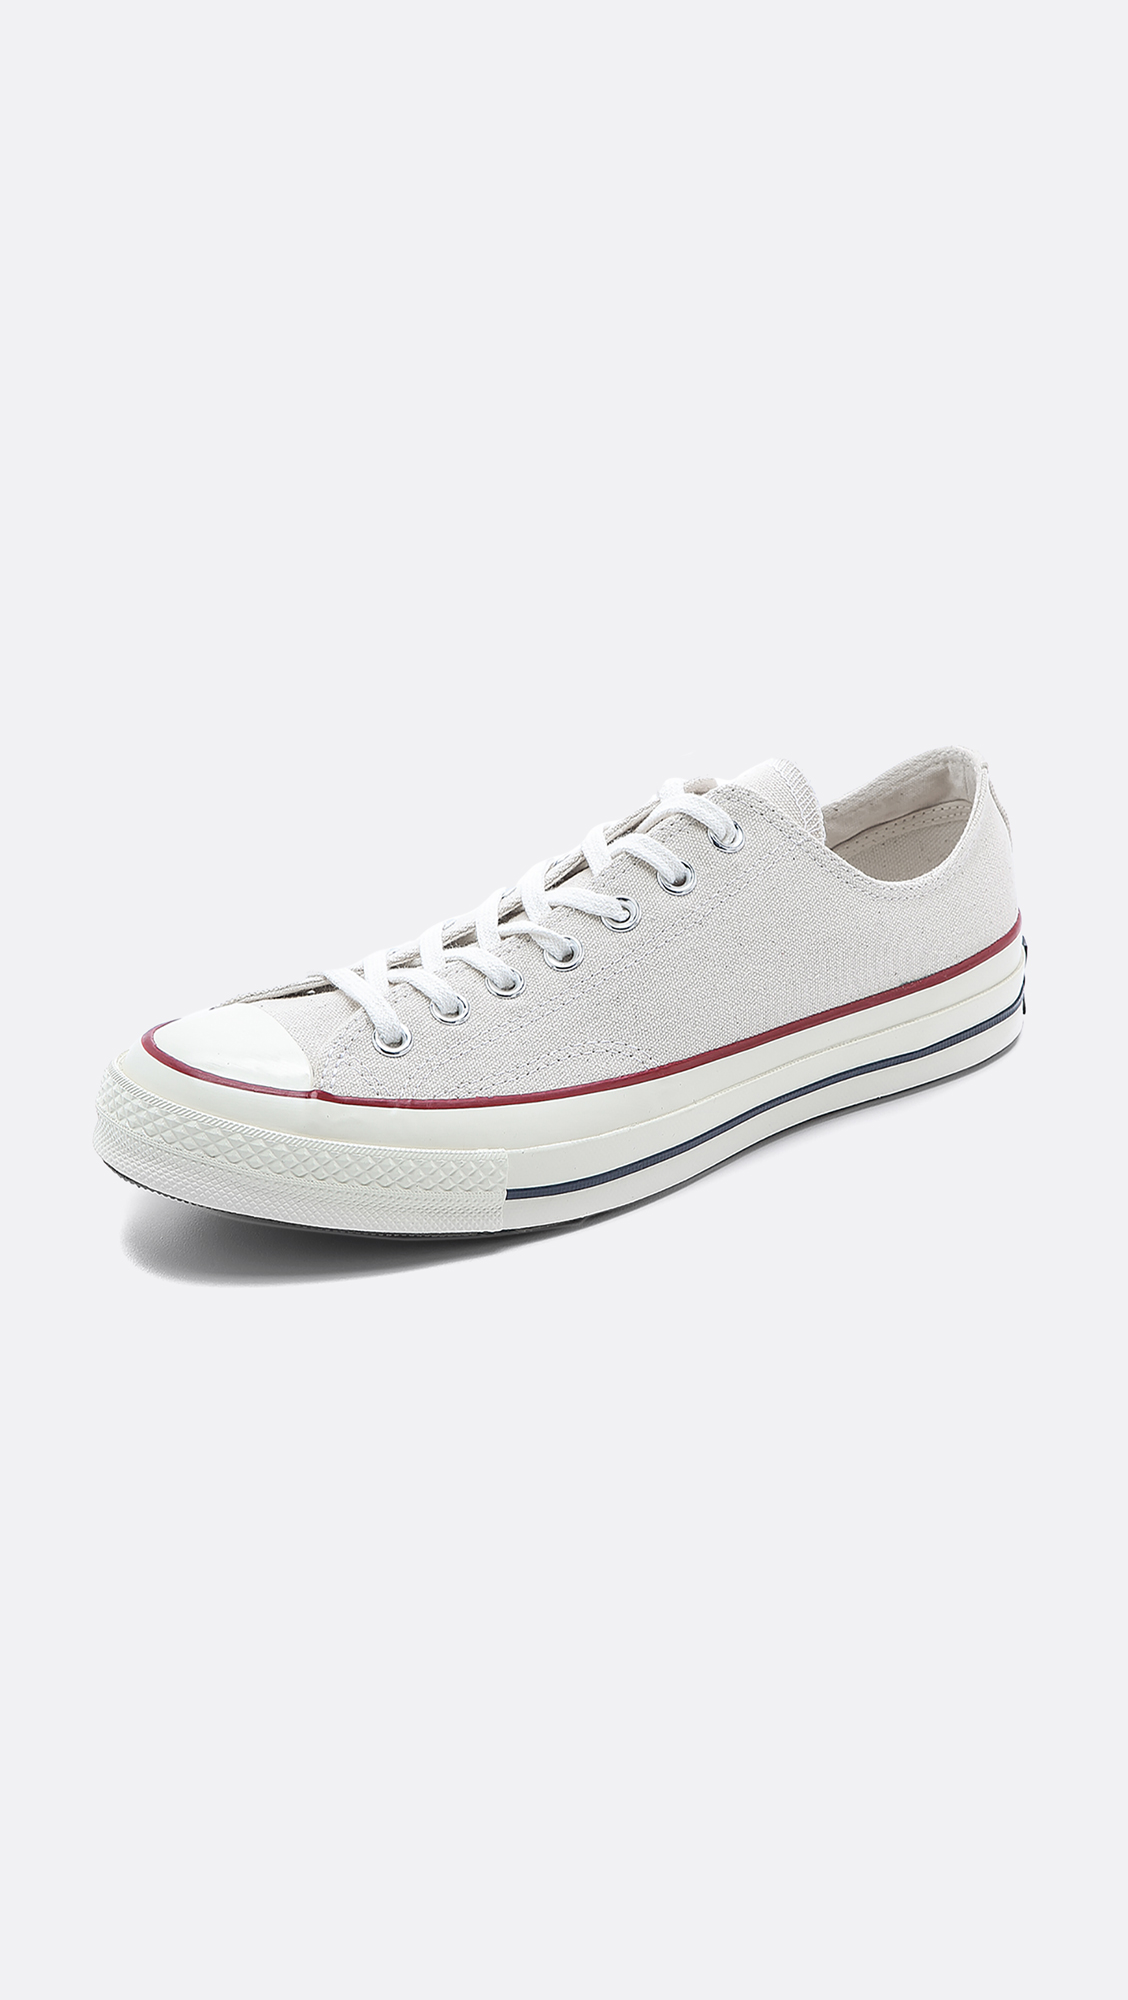 927bf4367e5d84 Converse Chuck Taylor All Star  70s Sneakers